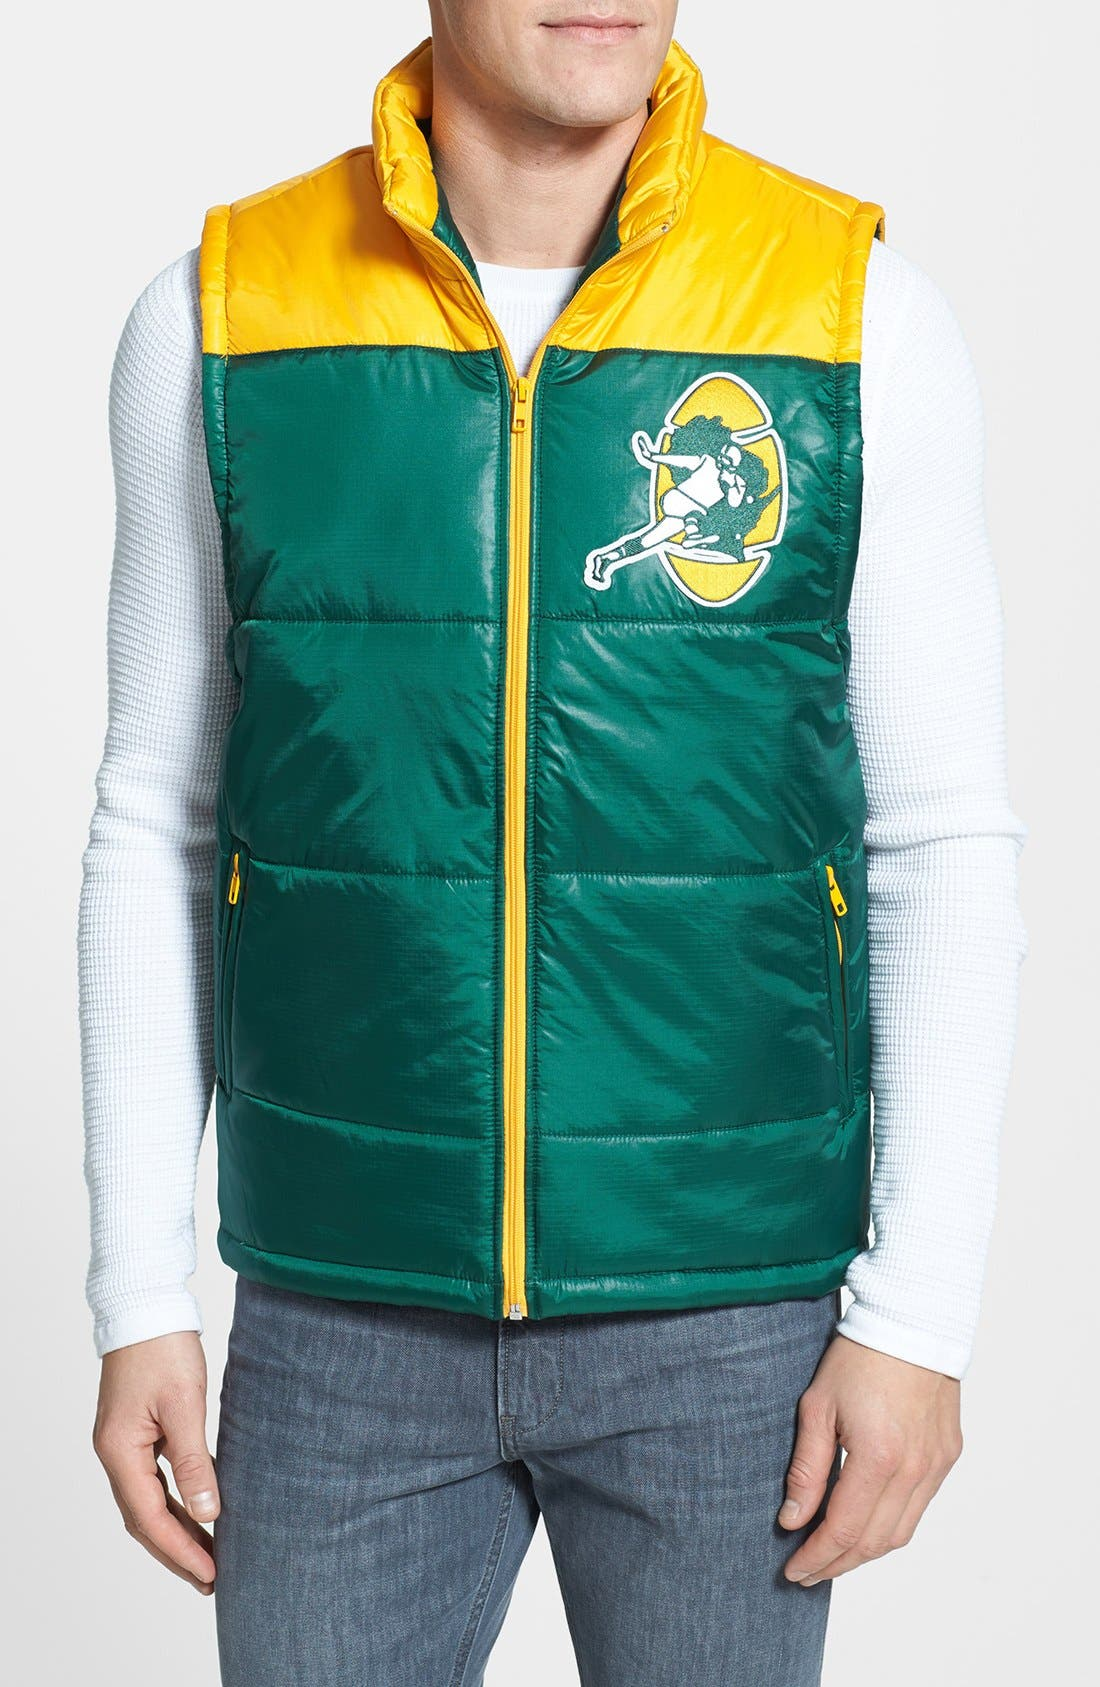 Main Image - Mitchell & Ness 'Winning Team - Green Bay Packers' Quilted Vest